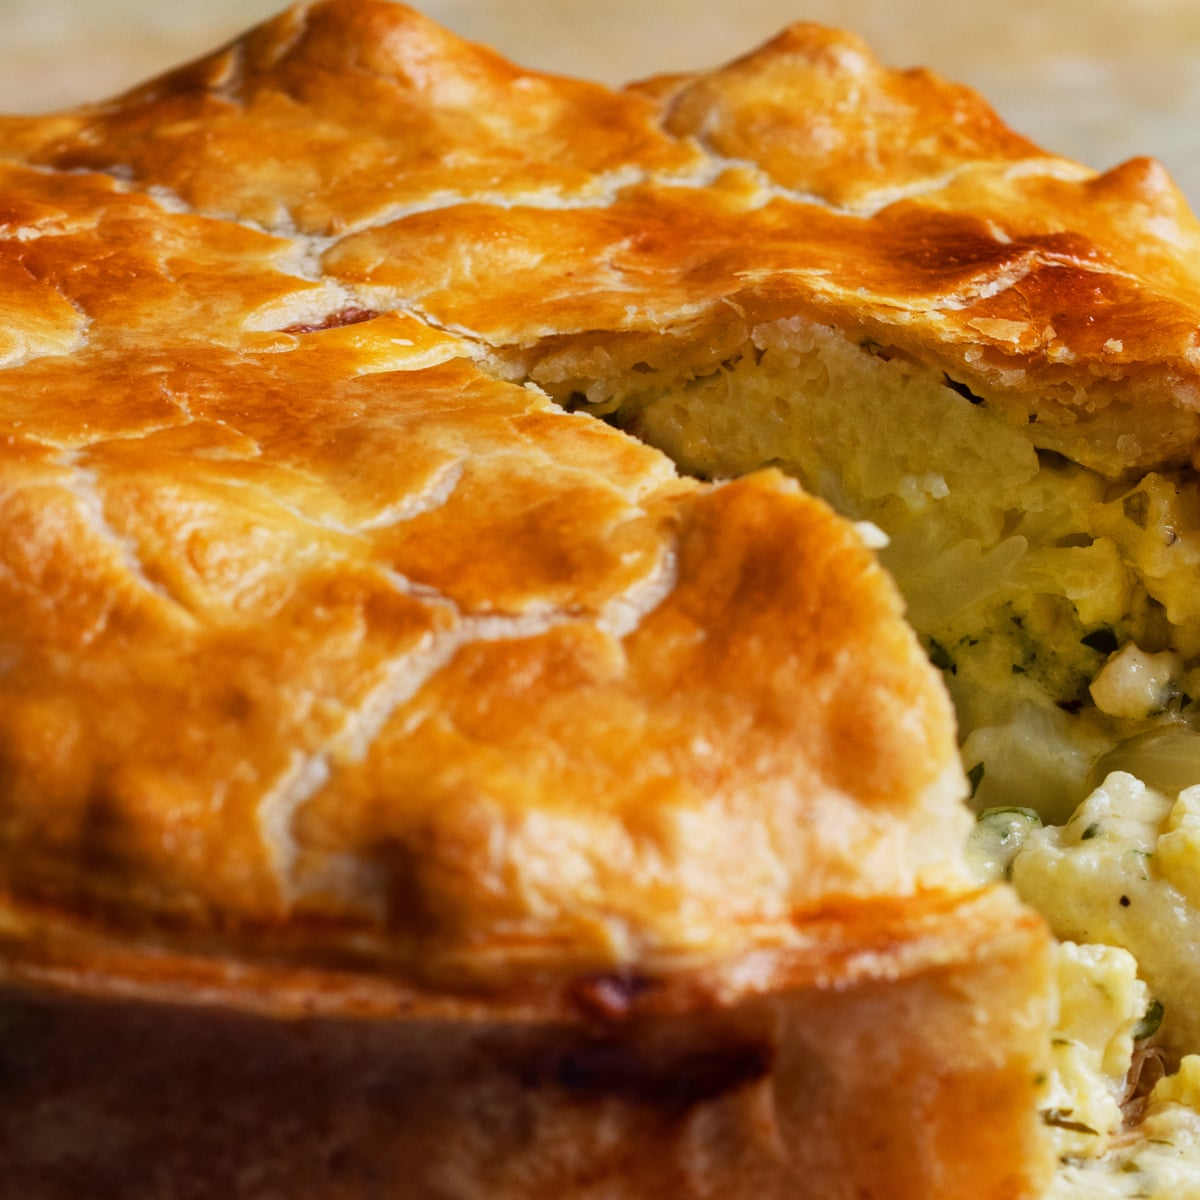 Nigel Slater S Pie Recipes Classic Chicken And Leek And Cauliflower Cheese Food The Guardian